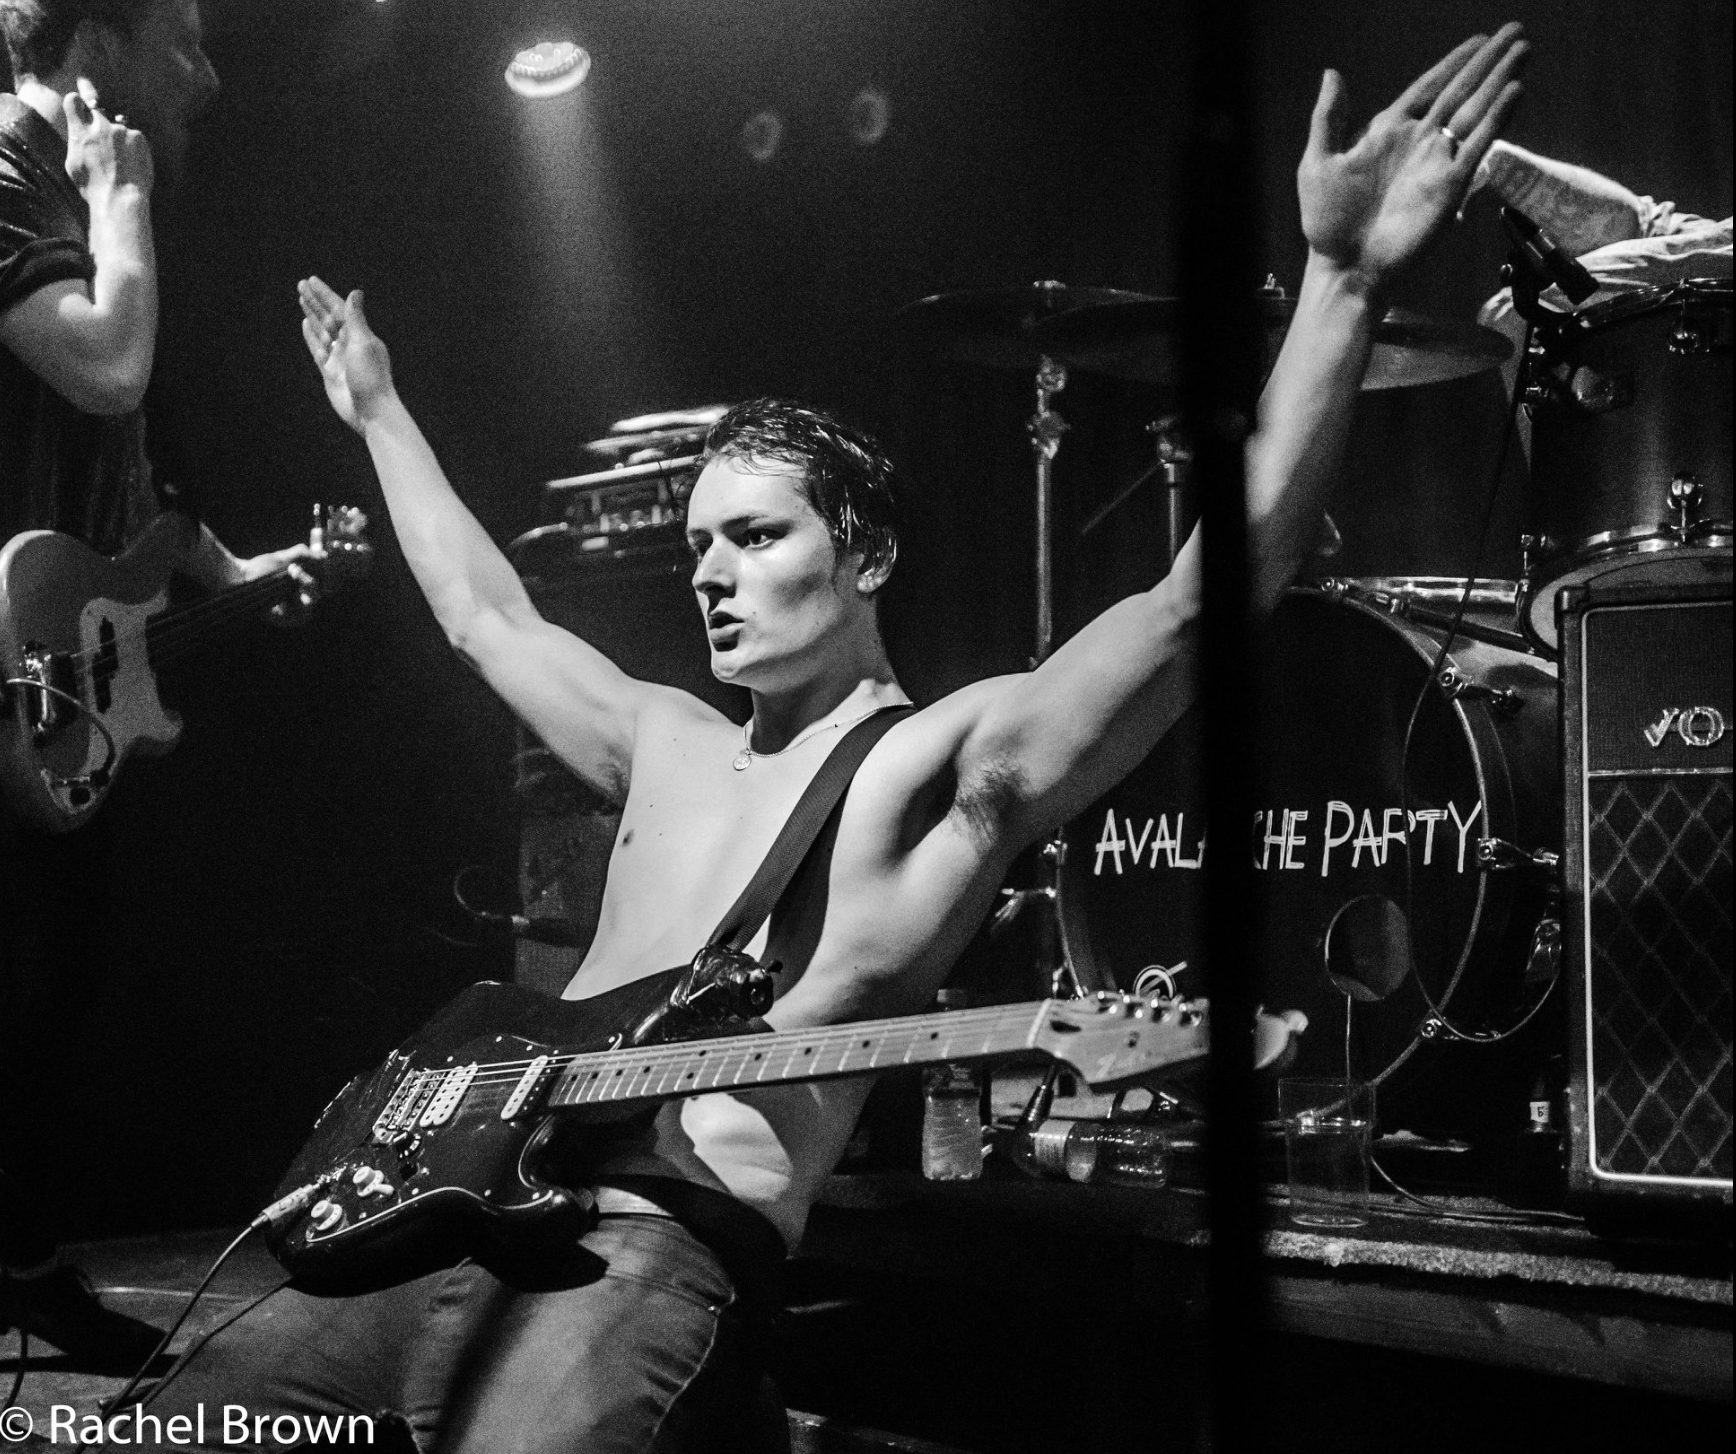 60 SECONDS WITH AVALANCHE PARTY